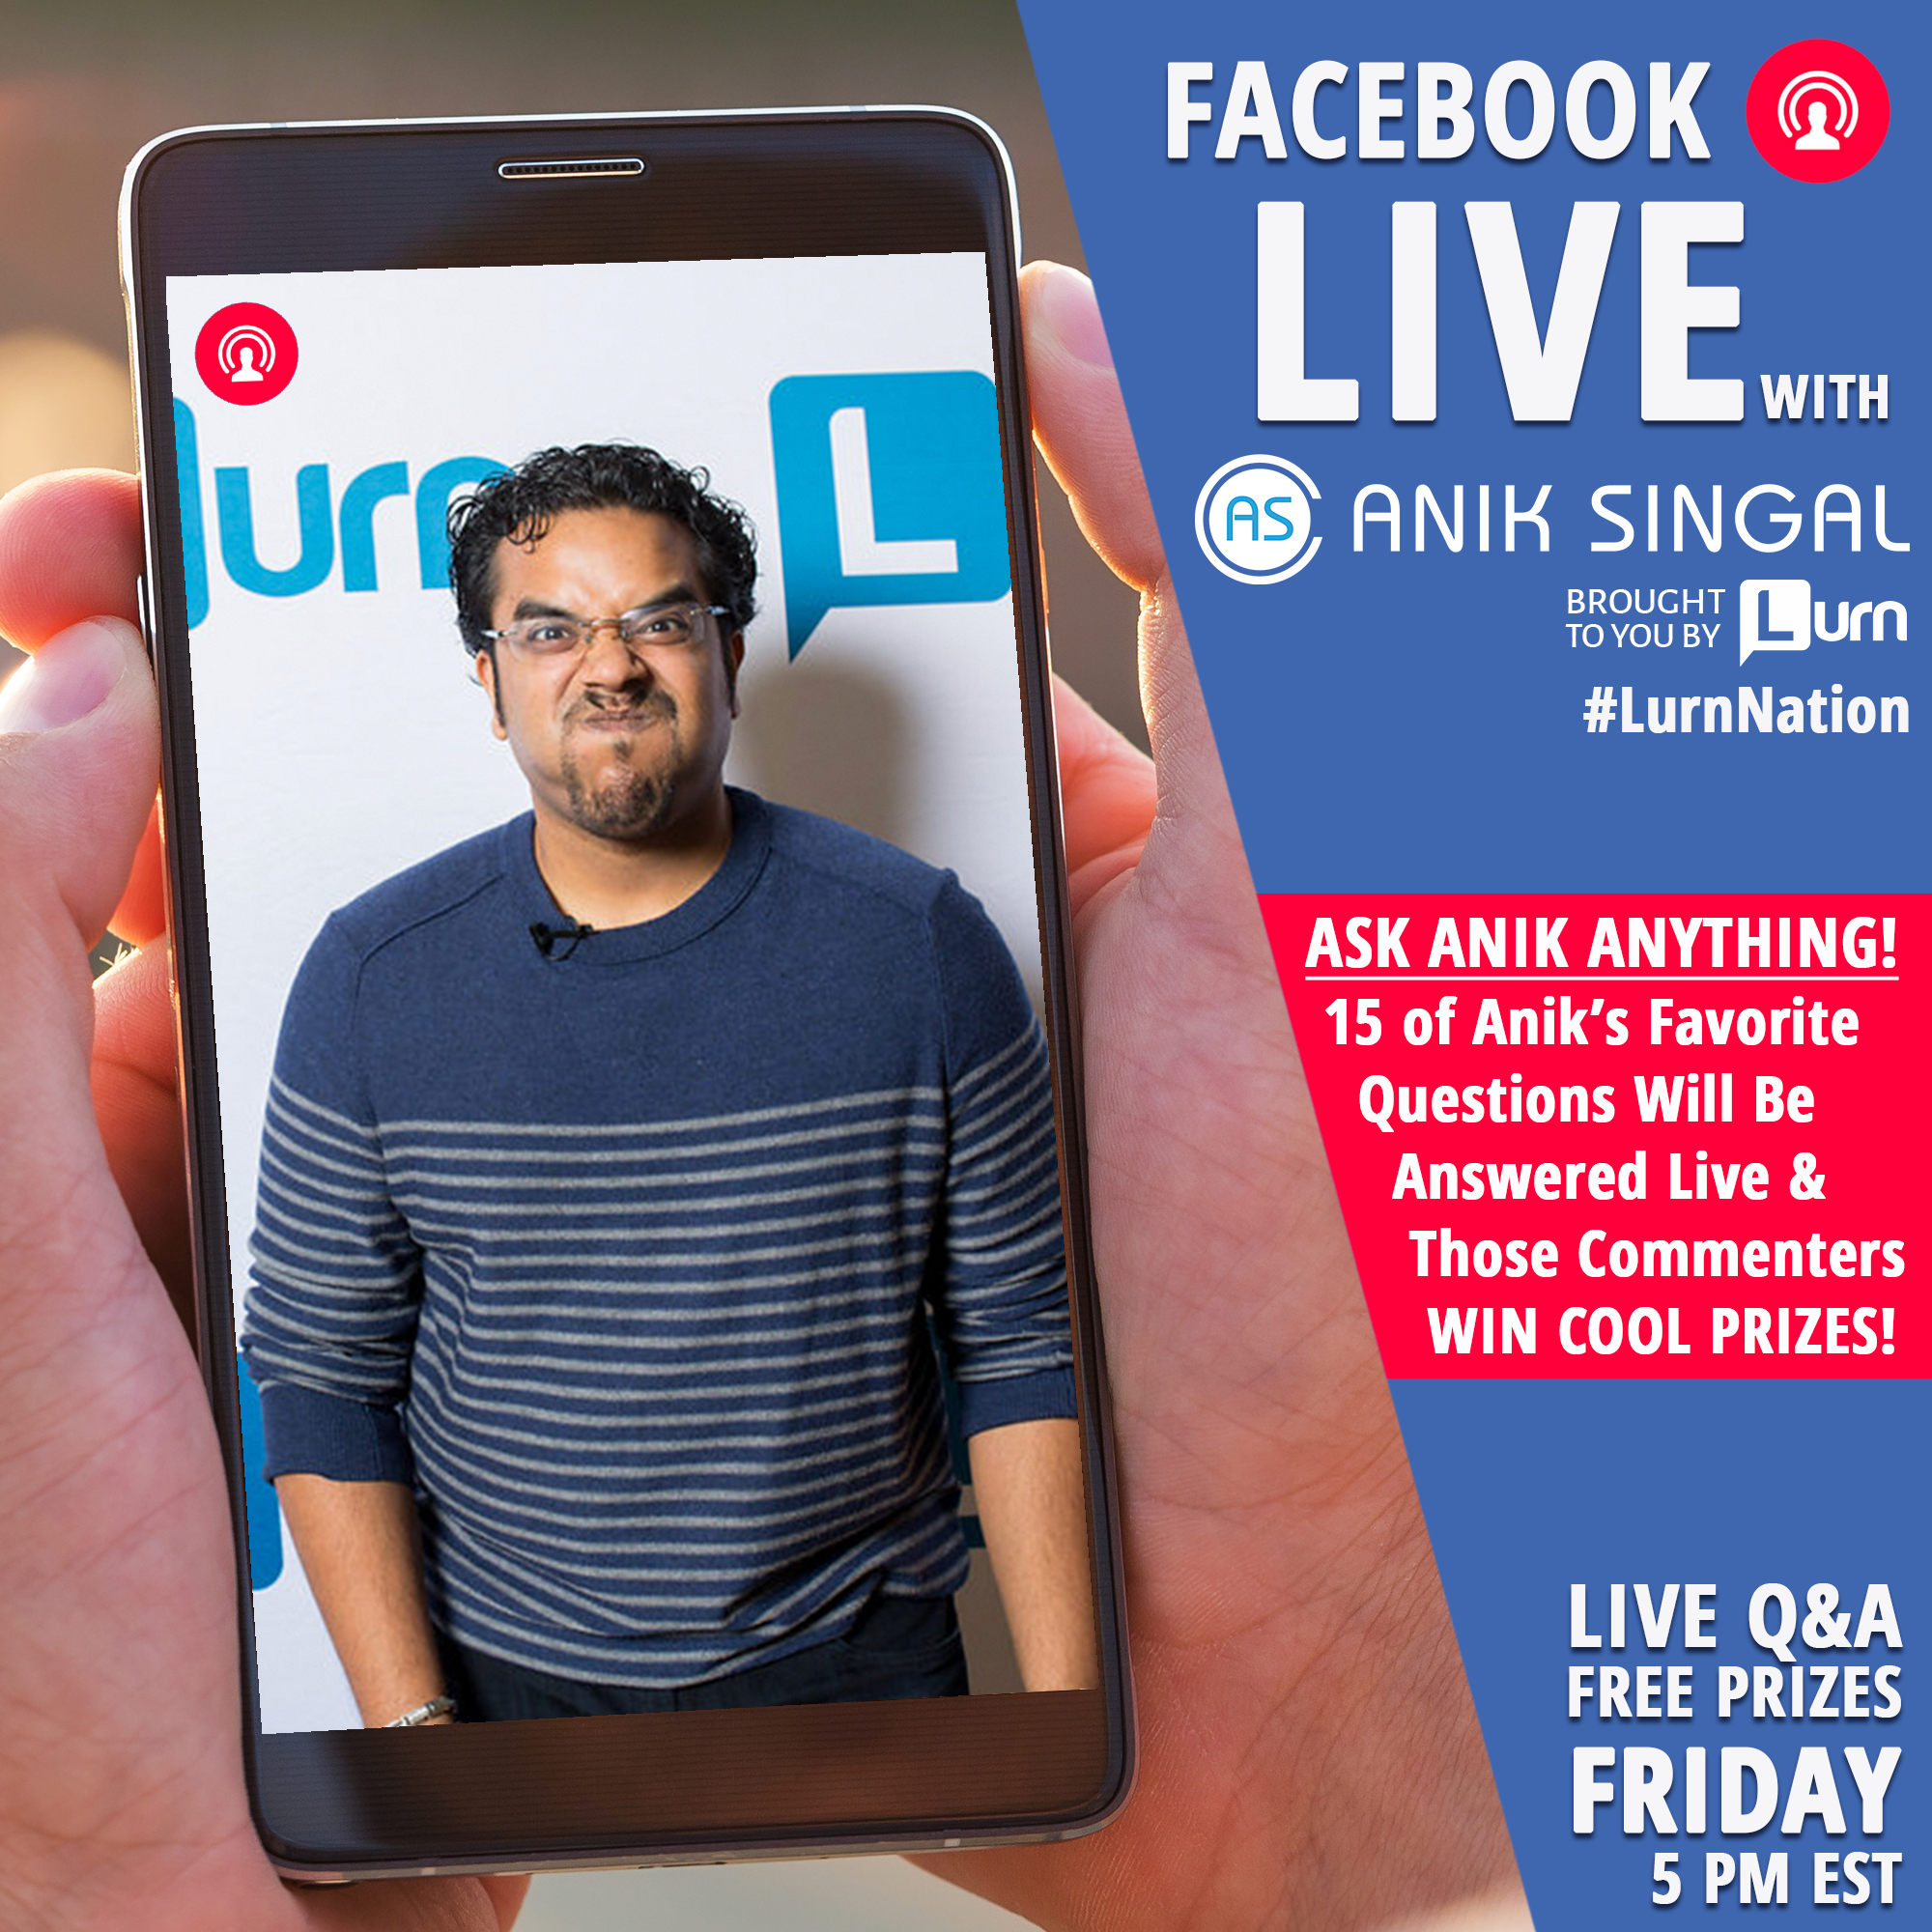 Ask Anik Anything FB Live